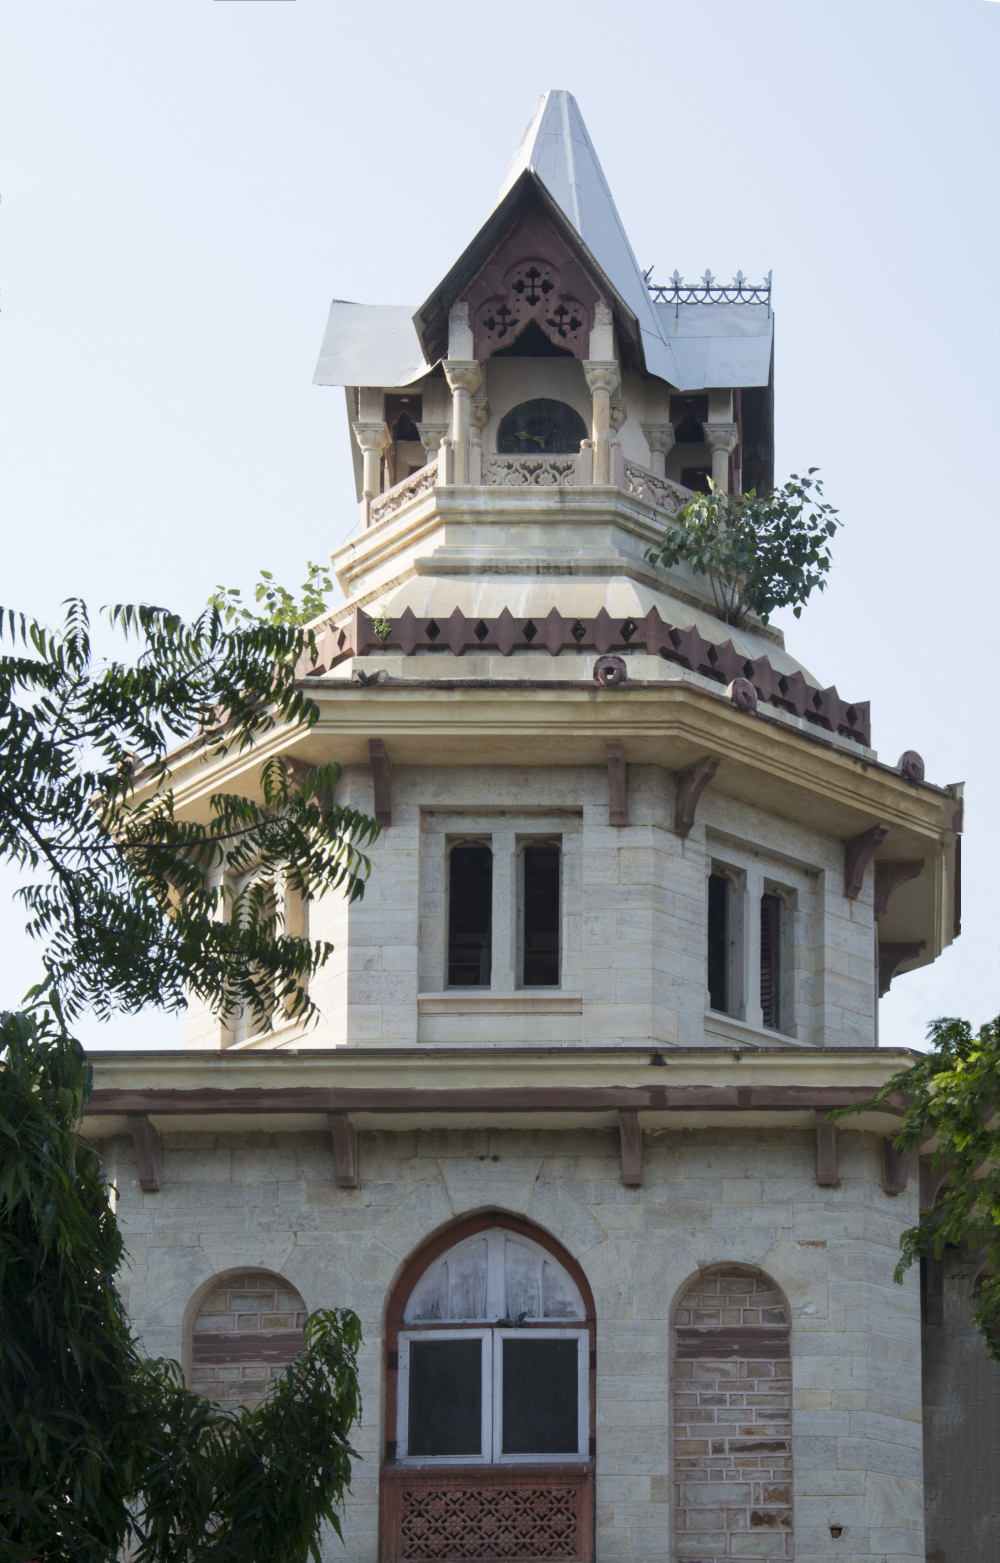 Fig.3: The top floor of the Mayo Hospital ghanta ghar shows the black iron, circular clock face, partially covered by the balcony railing. The clock is not in a functioning condition anymore